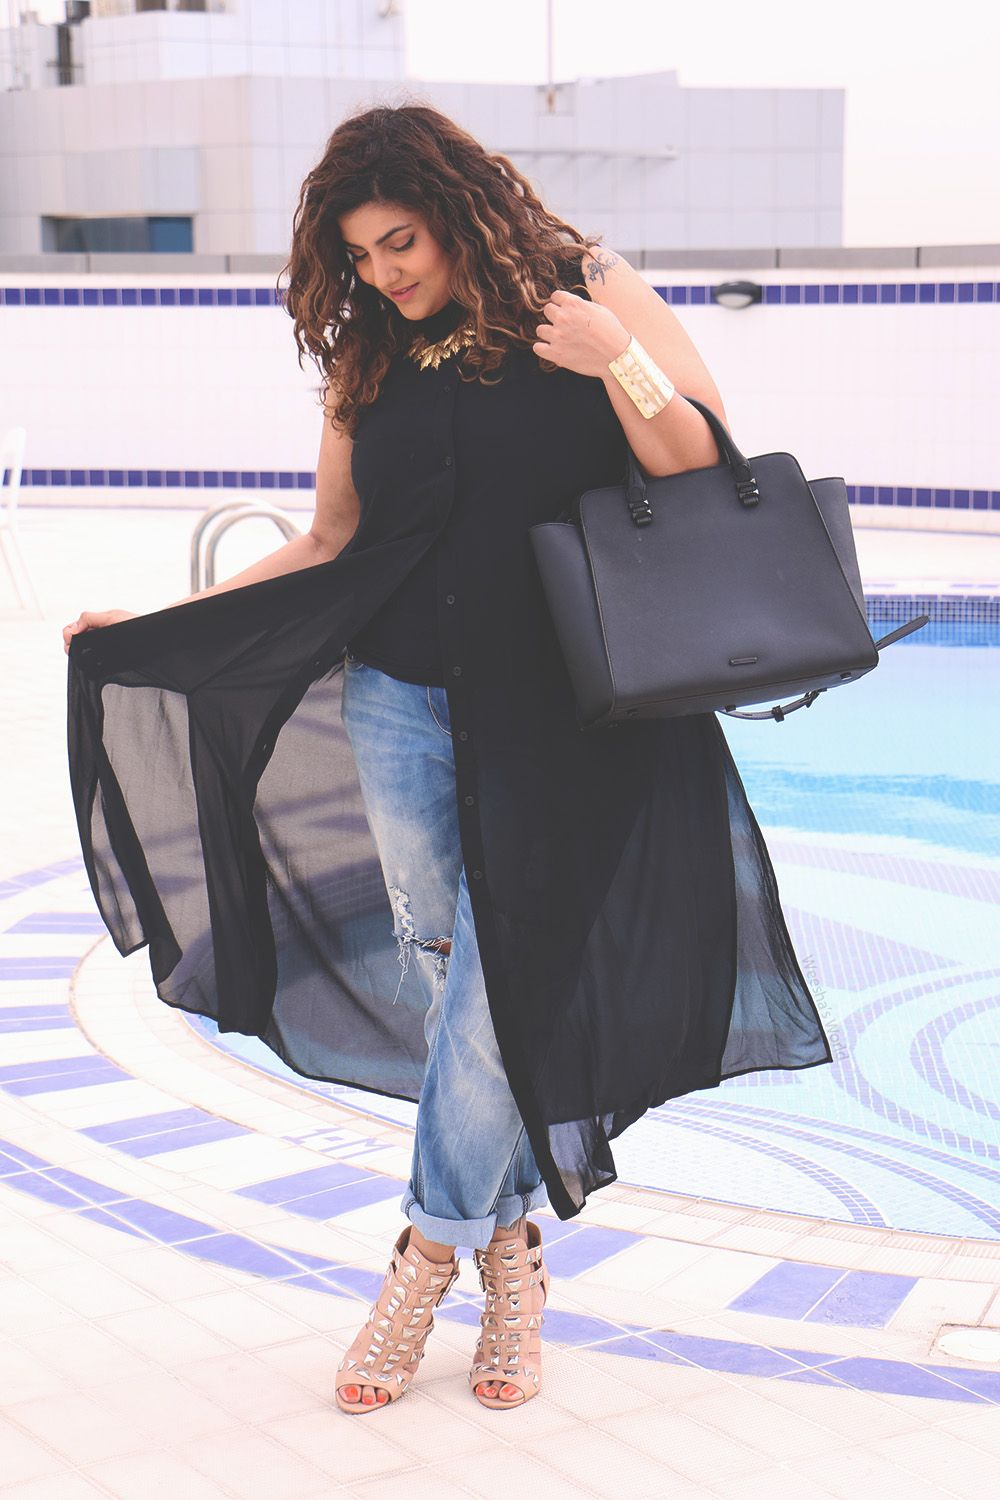 5c4d3cf6fb64 Yours Clothing Black sheer chiffon maxi shirt, DIY plus size boyfriend  jeans, River Island studded nude shoes, New Look cuff, aliExpress necklace,  ...